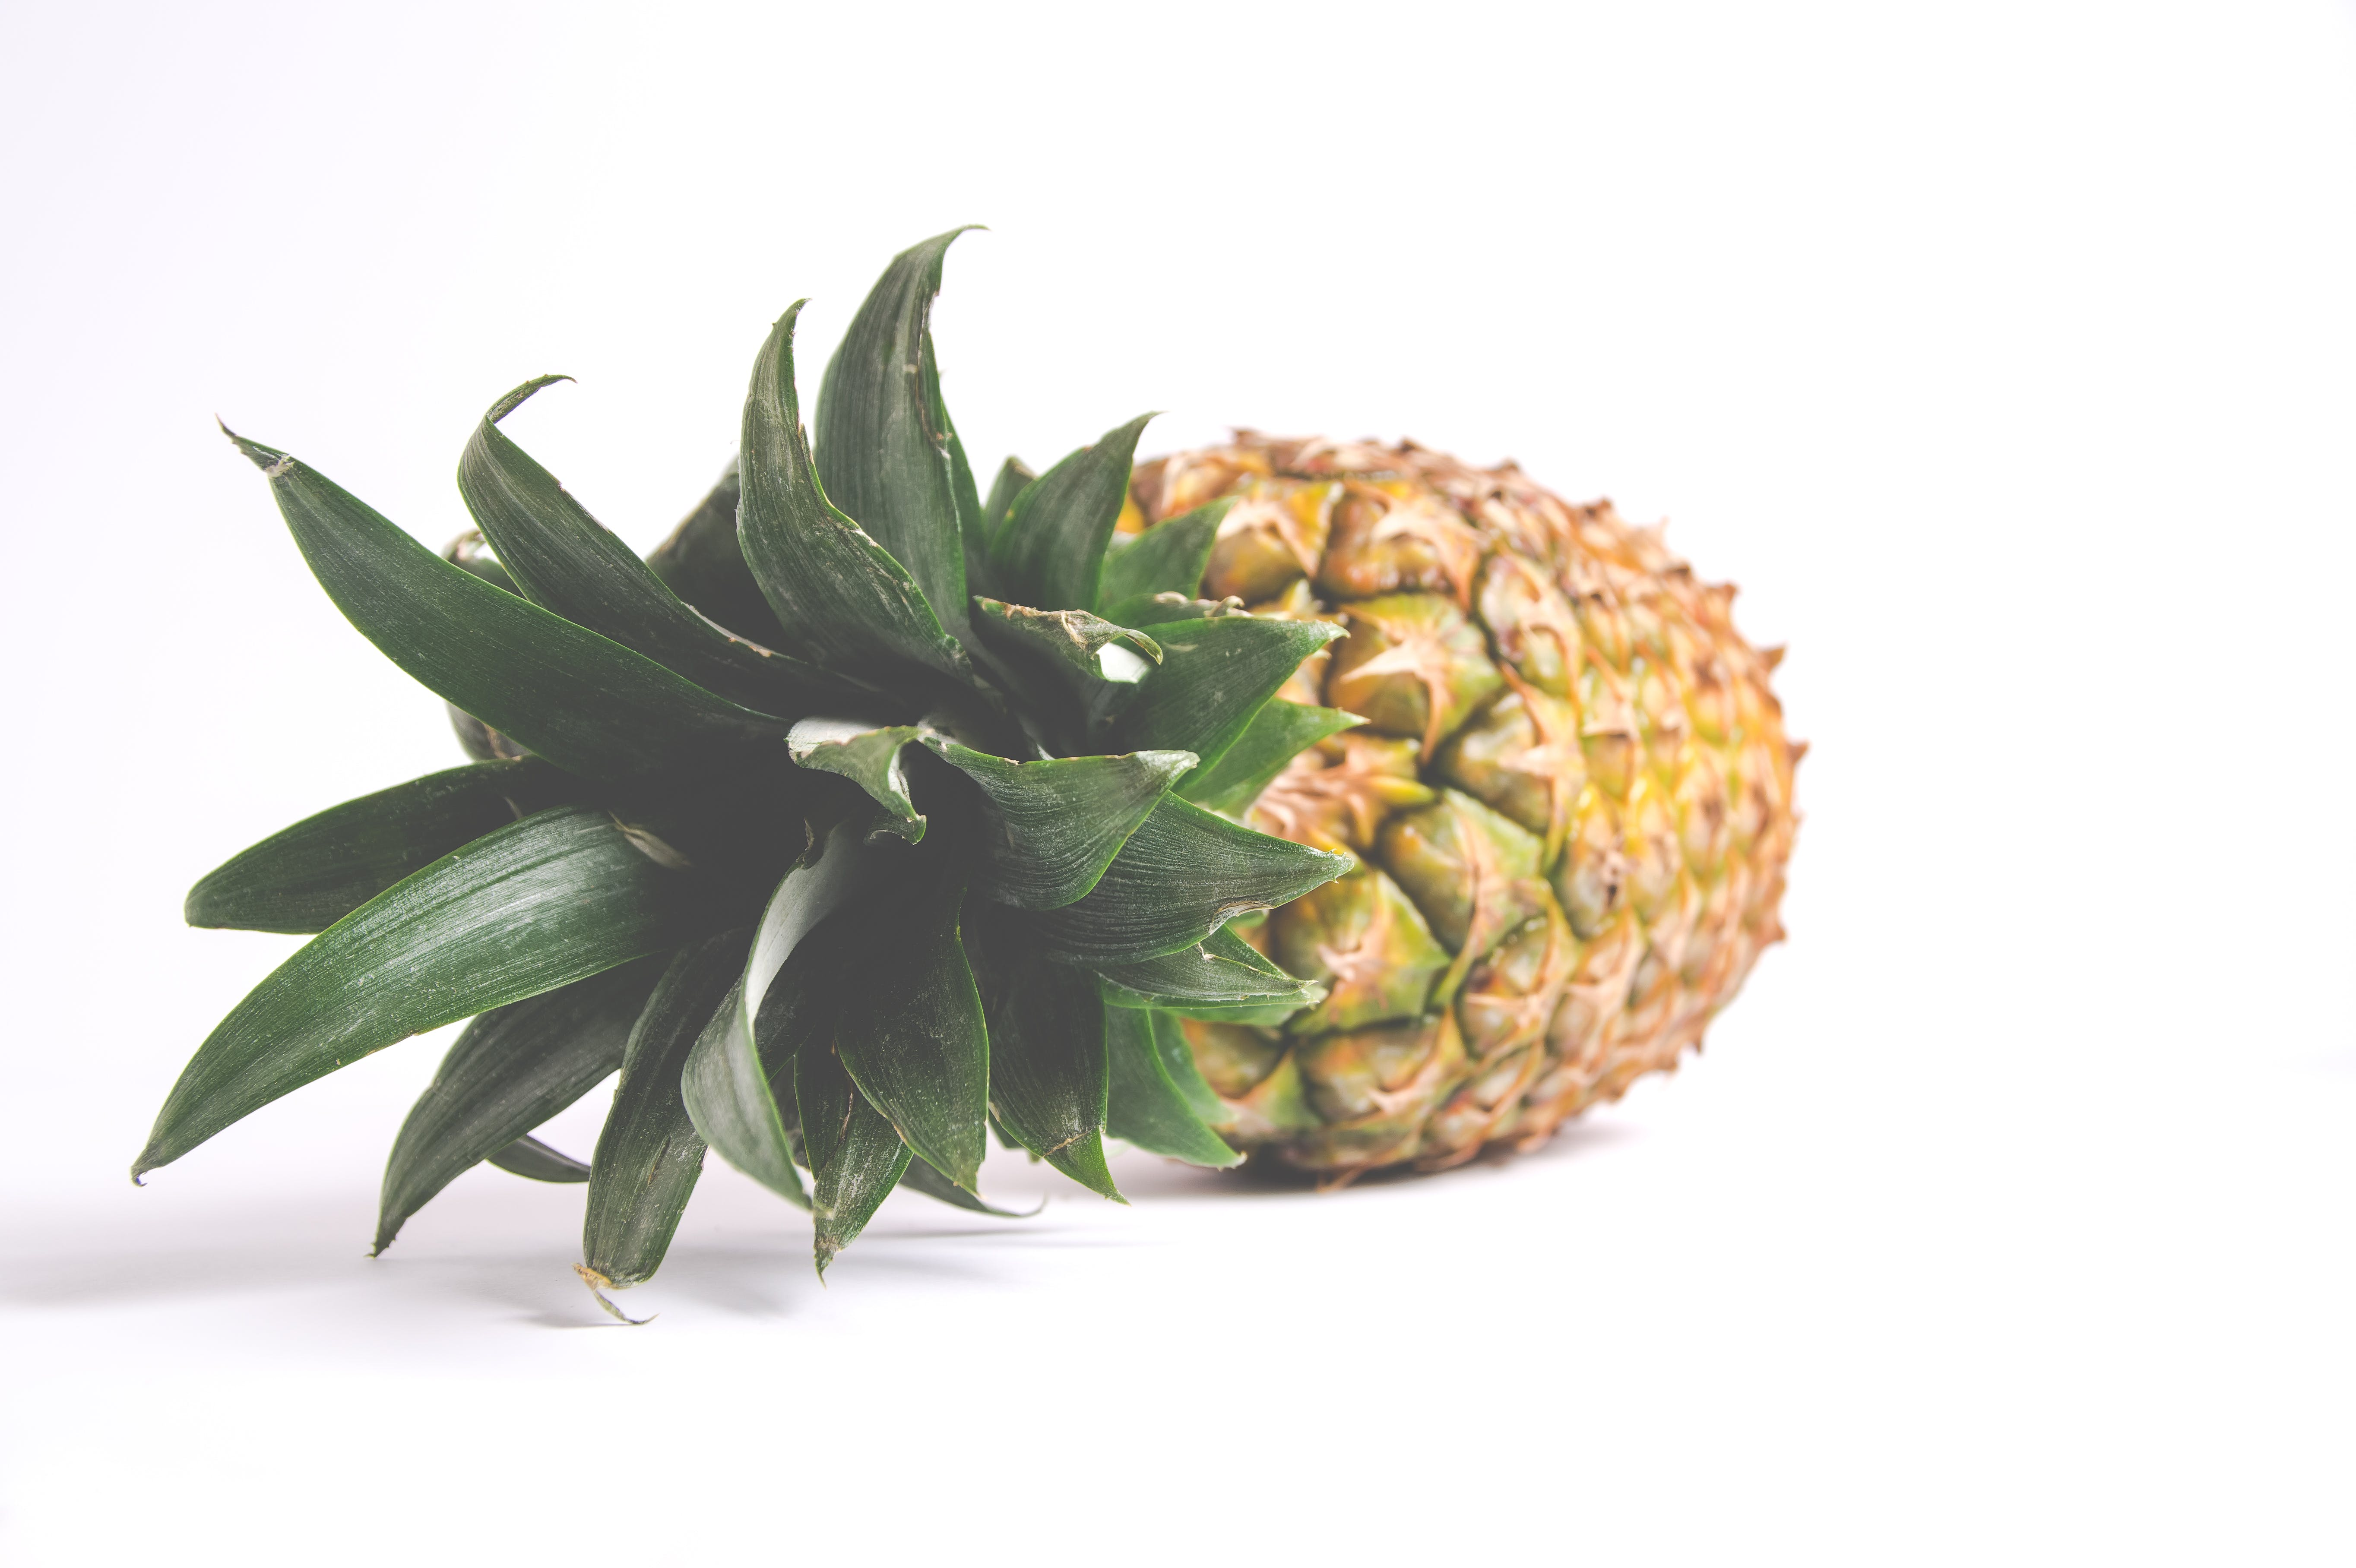 Gratis stockfoto met ananas, close-up, depth of field, eten